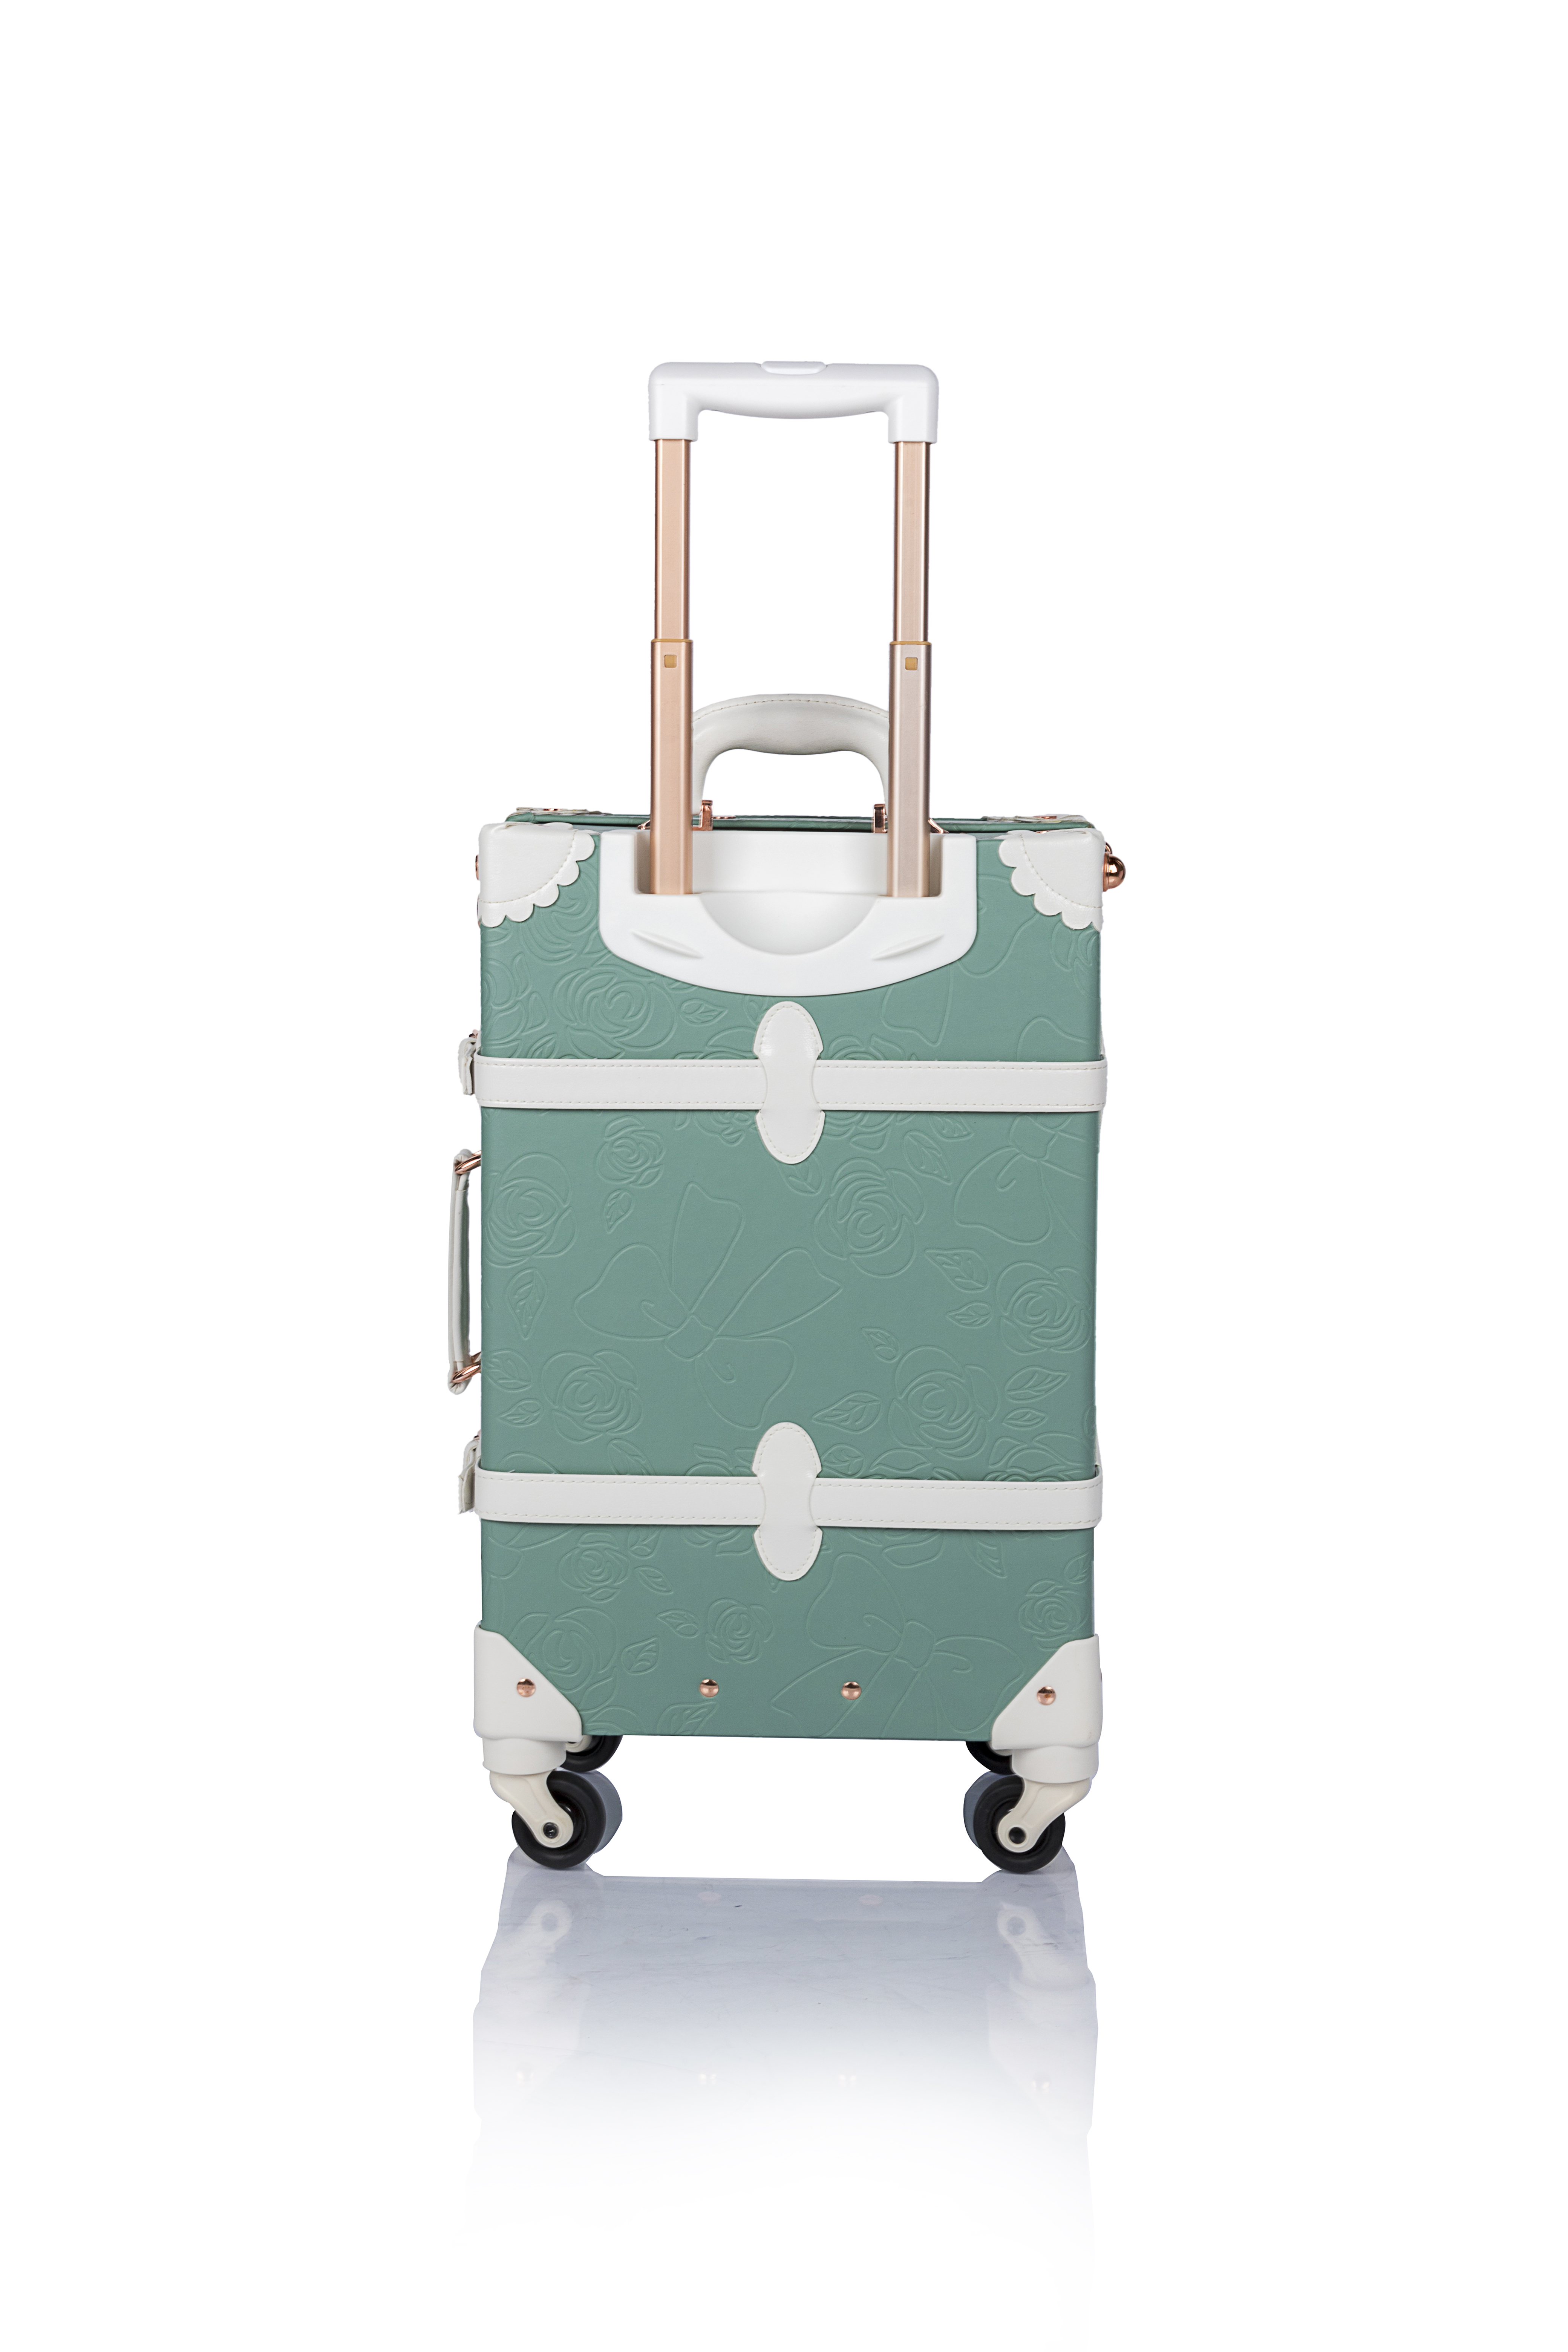 luggage trip suitcase holiday bags